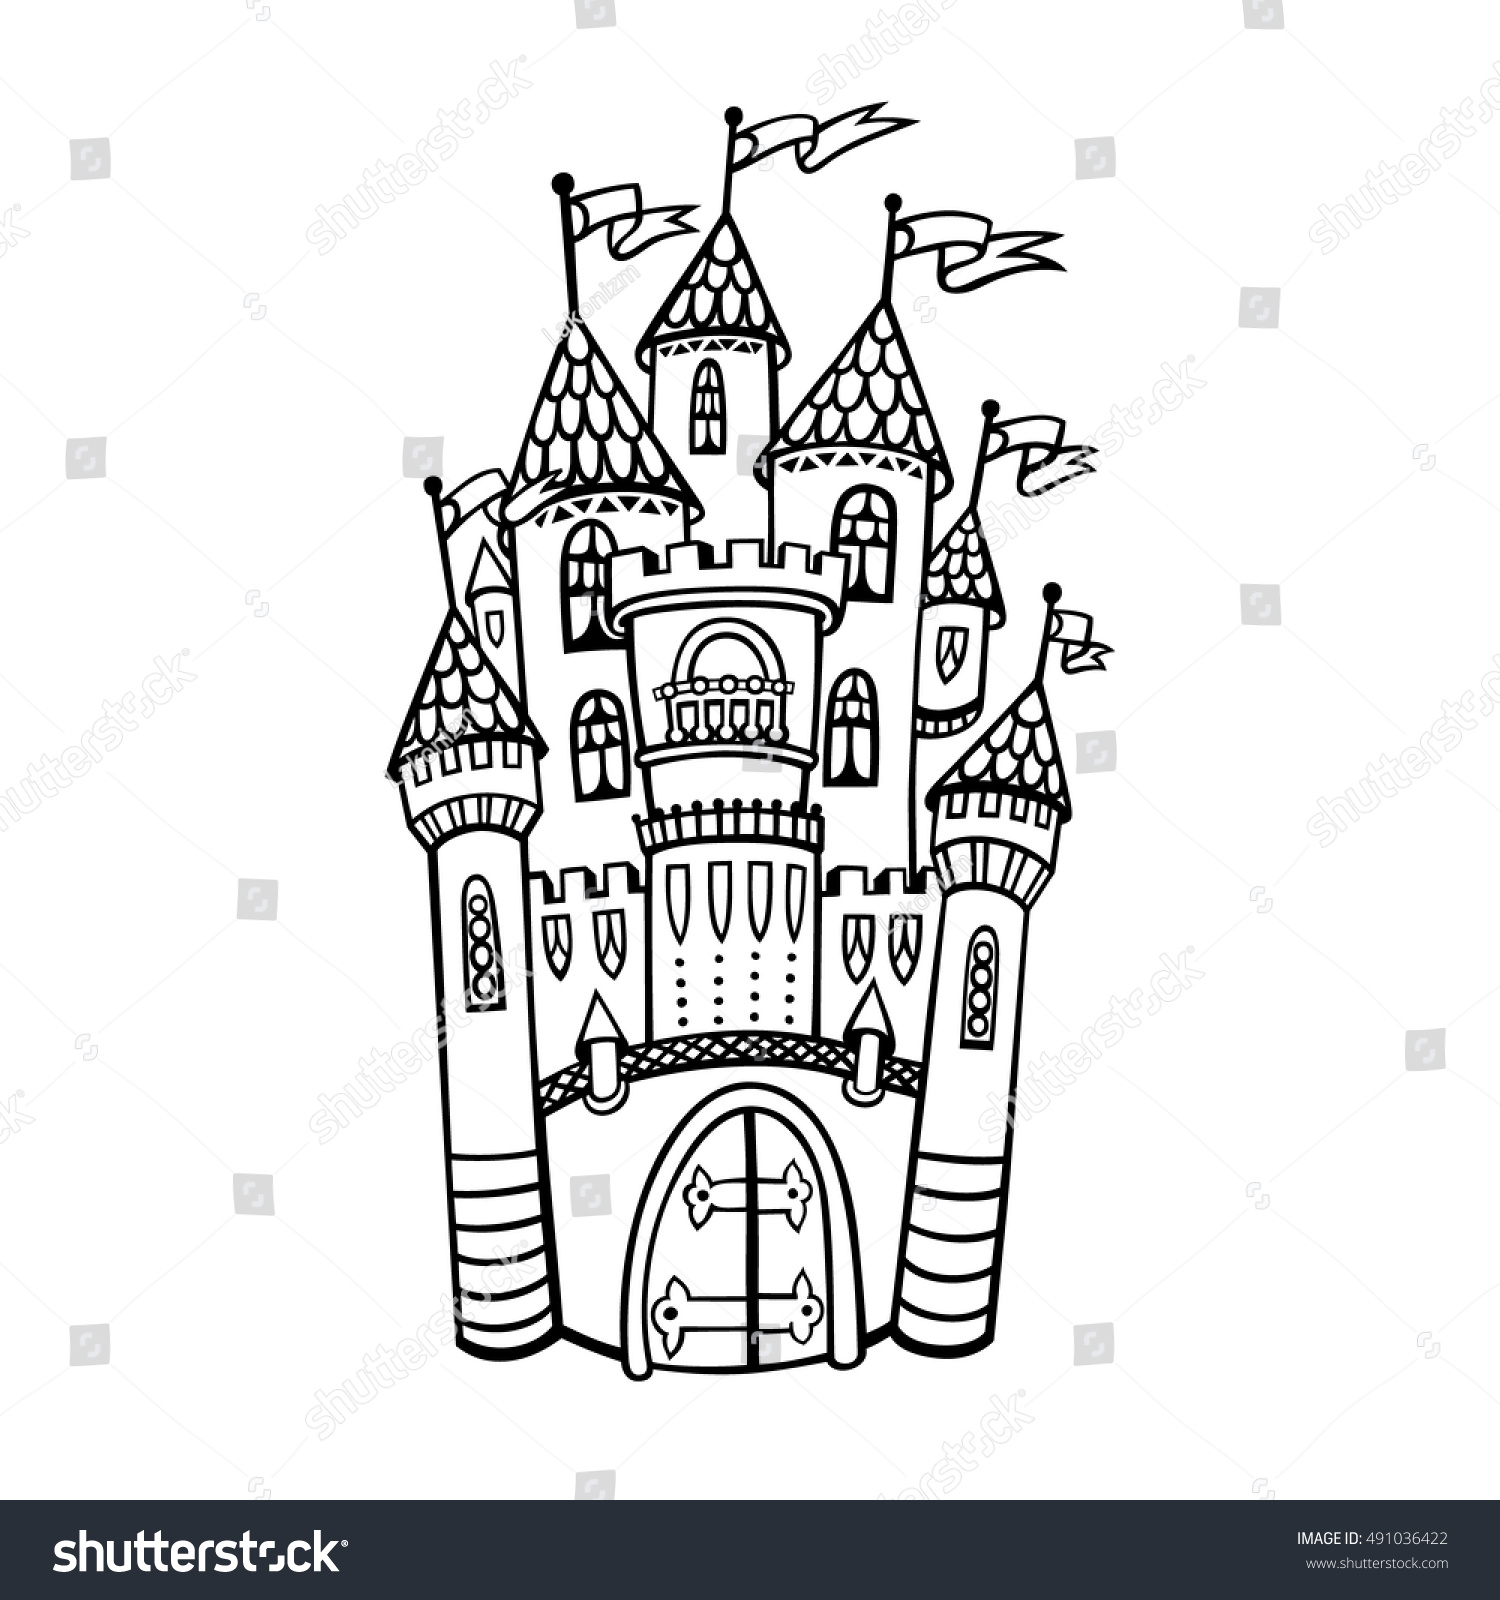 Castle illustration vector isolated drawing medieval stock vector castle illustration vector isolated drawing medieval stock vector 491036422 shutterstock stopboris Choice Image